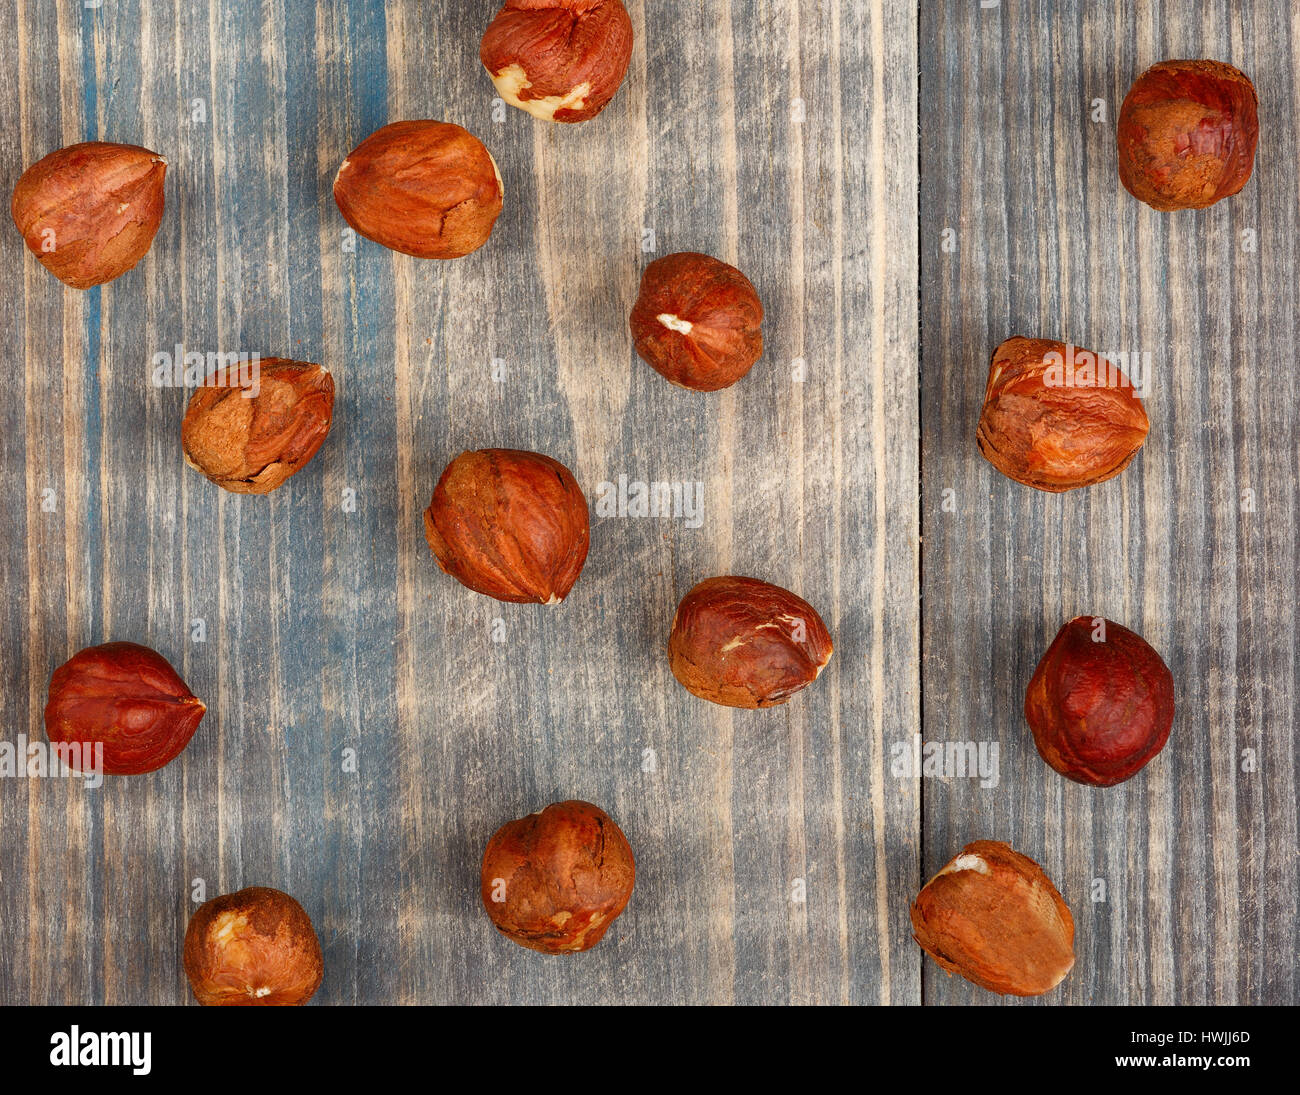 Nuts of hazelnut are scattered on a wooden table Stock Photo